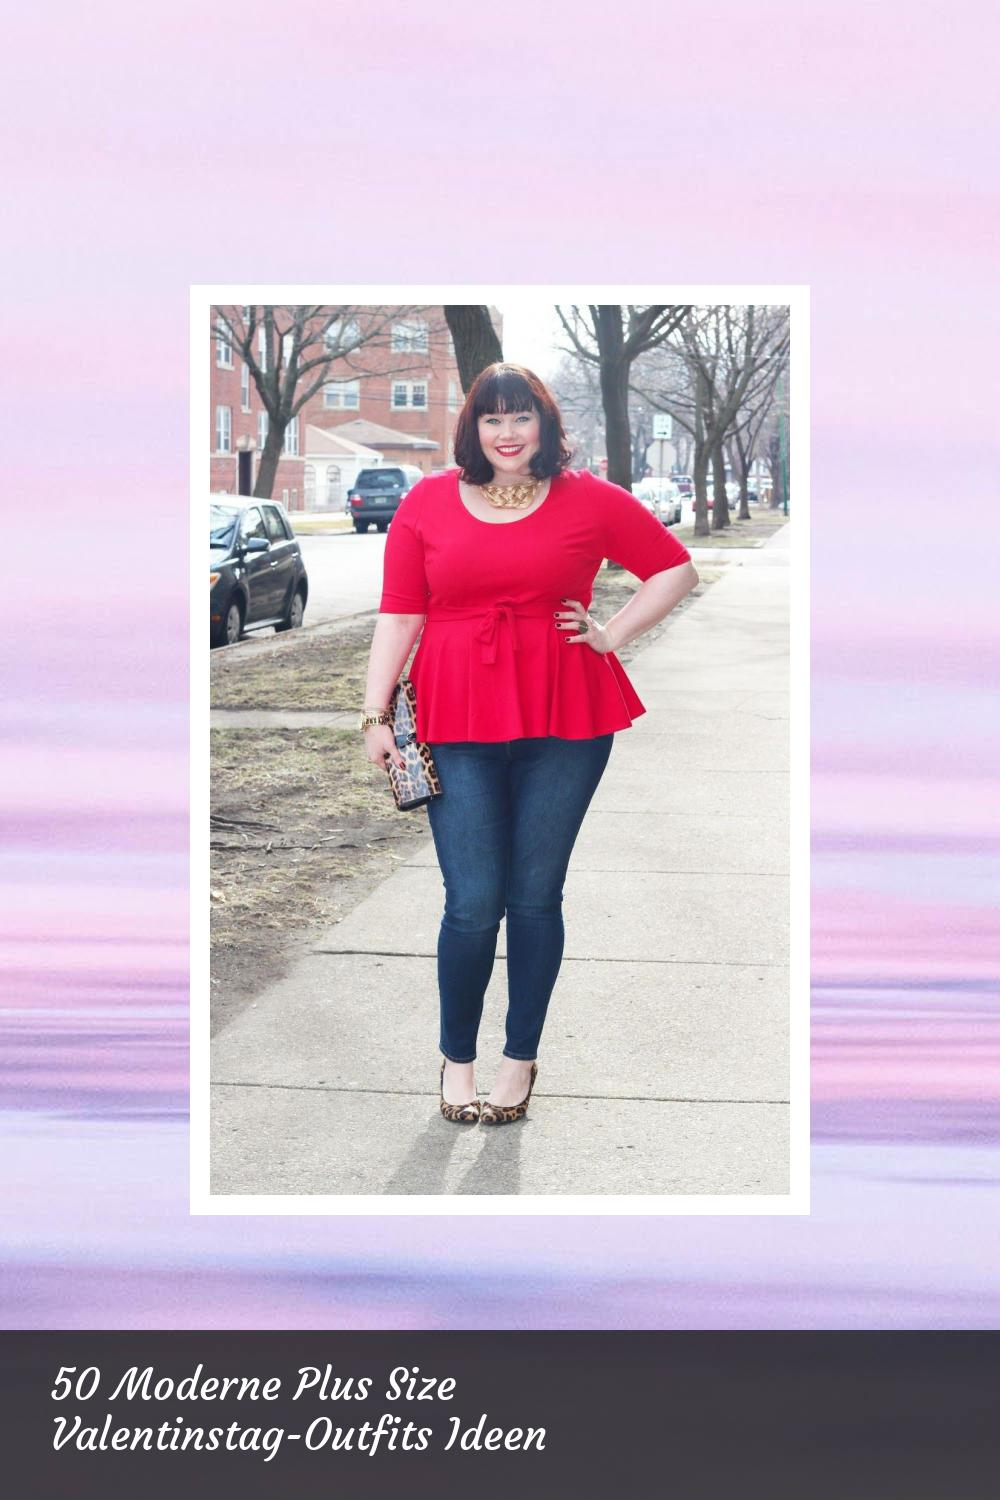 50 Moderne Plus Size Valentinstag-Outfits Ideen 53